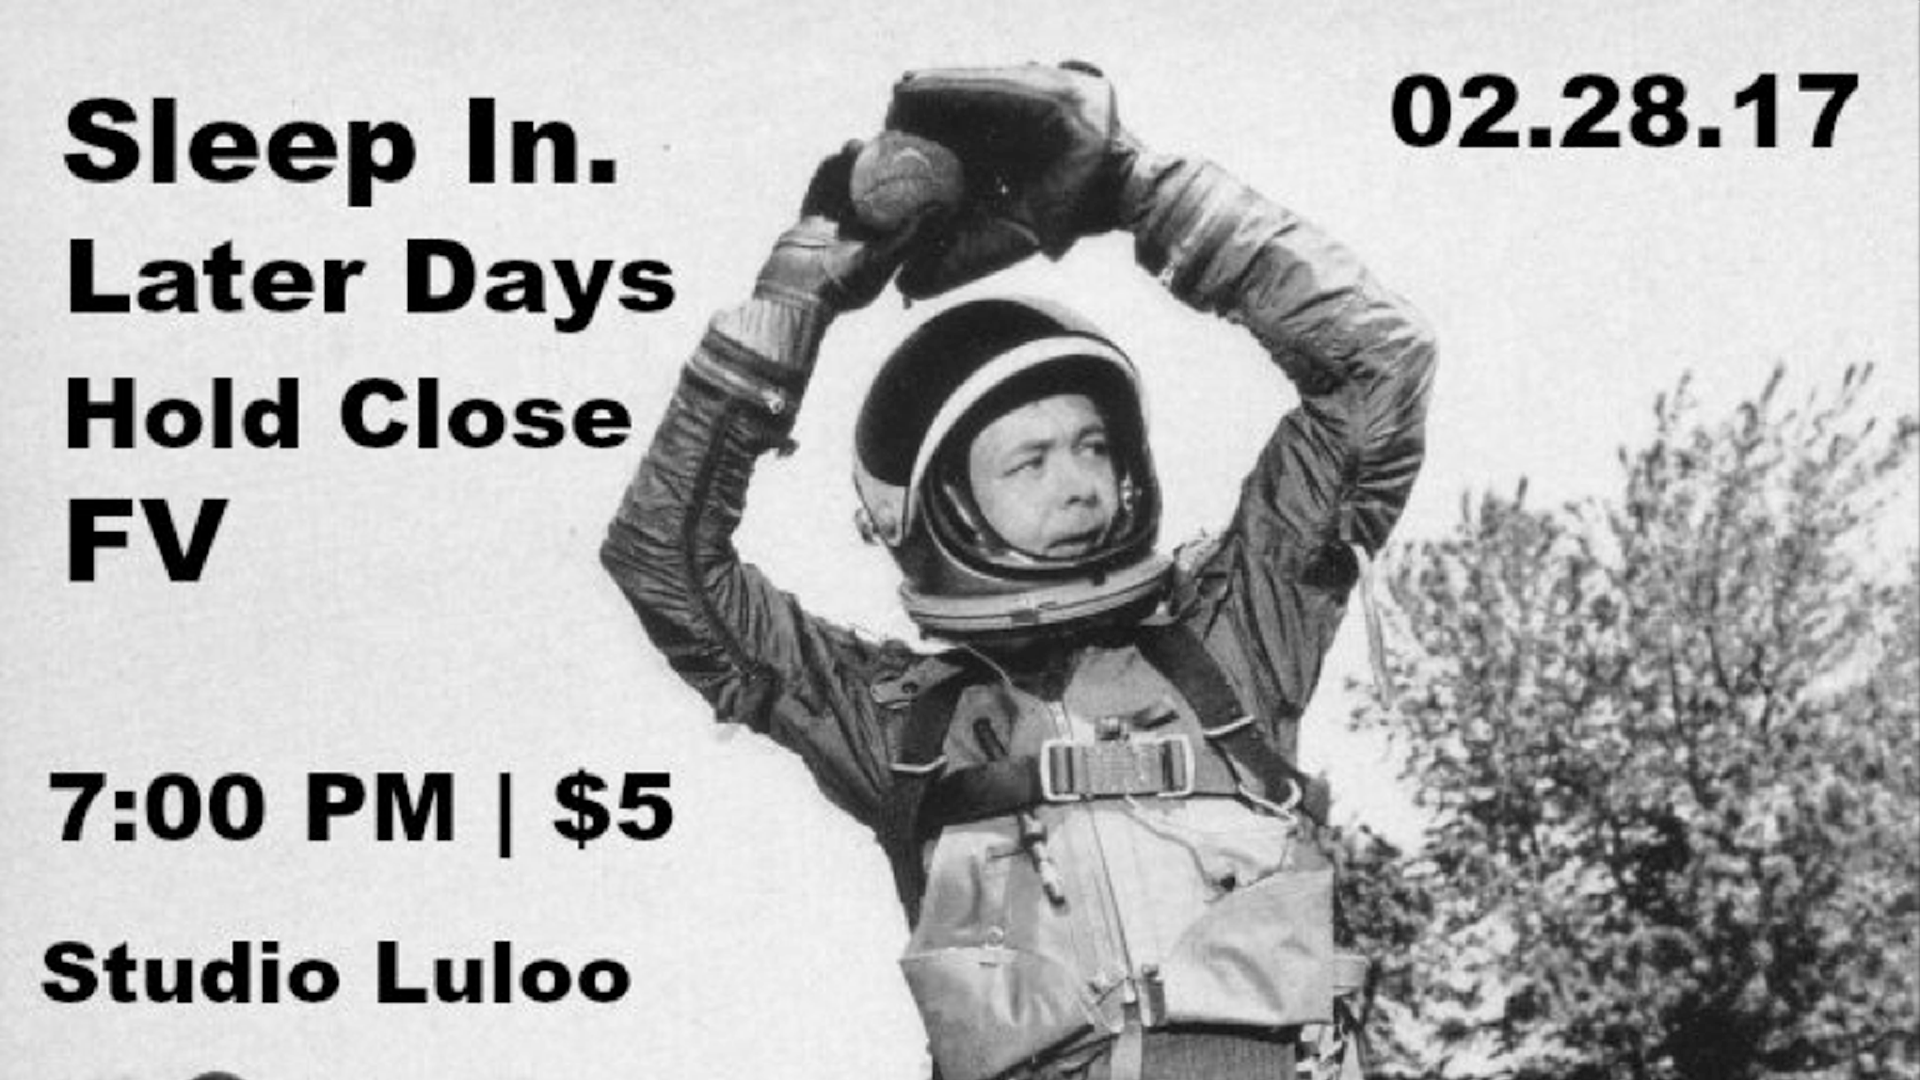 AFTERMATH COLLECTIVE PRESENTS: SLEEP IN.,LATER DAYS (TX), HOLD CLOSE (MO), FV @ STUDIO LULOO (Feb. 28th, 2017)   Math Pop, Rock, Post-Hardcore, Emo, Alternative    Oaklyn, NJ   Posted Friday, February 24, 2017